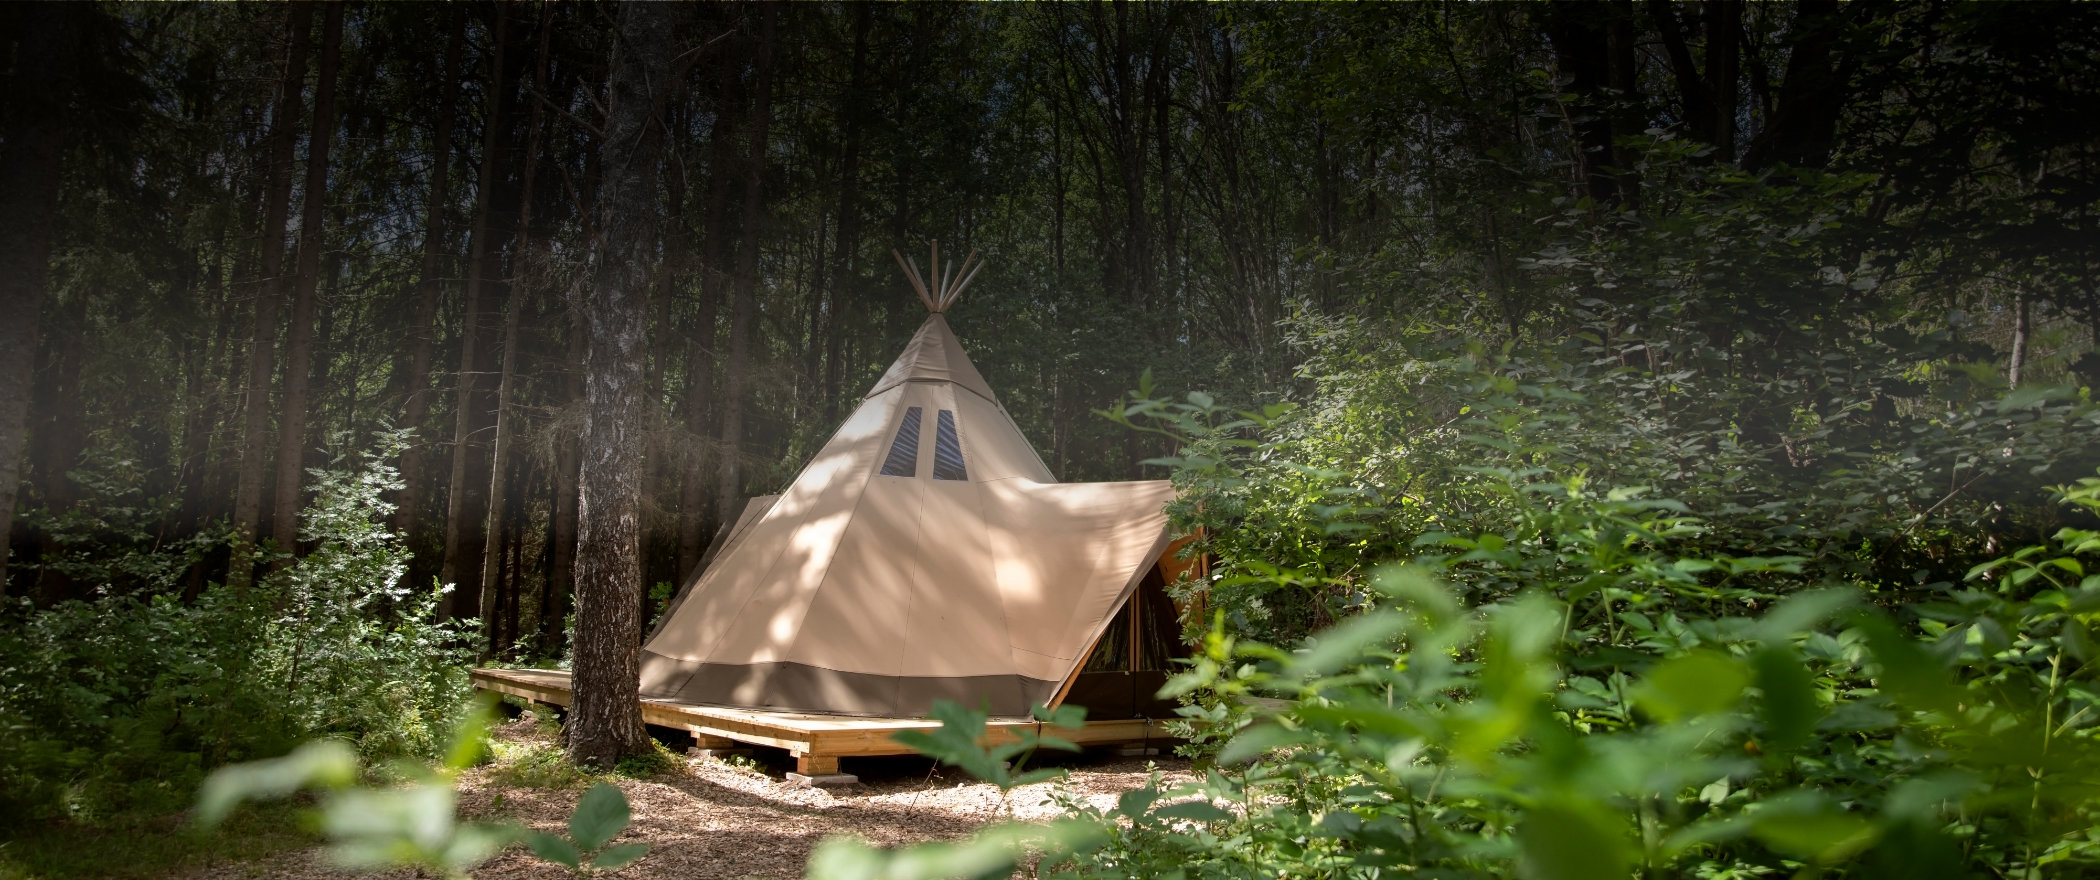 Aurum from Tentipi, spacious and glamorous glamping tent, for the home or the campsite